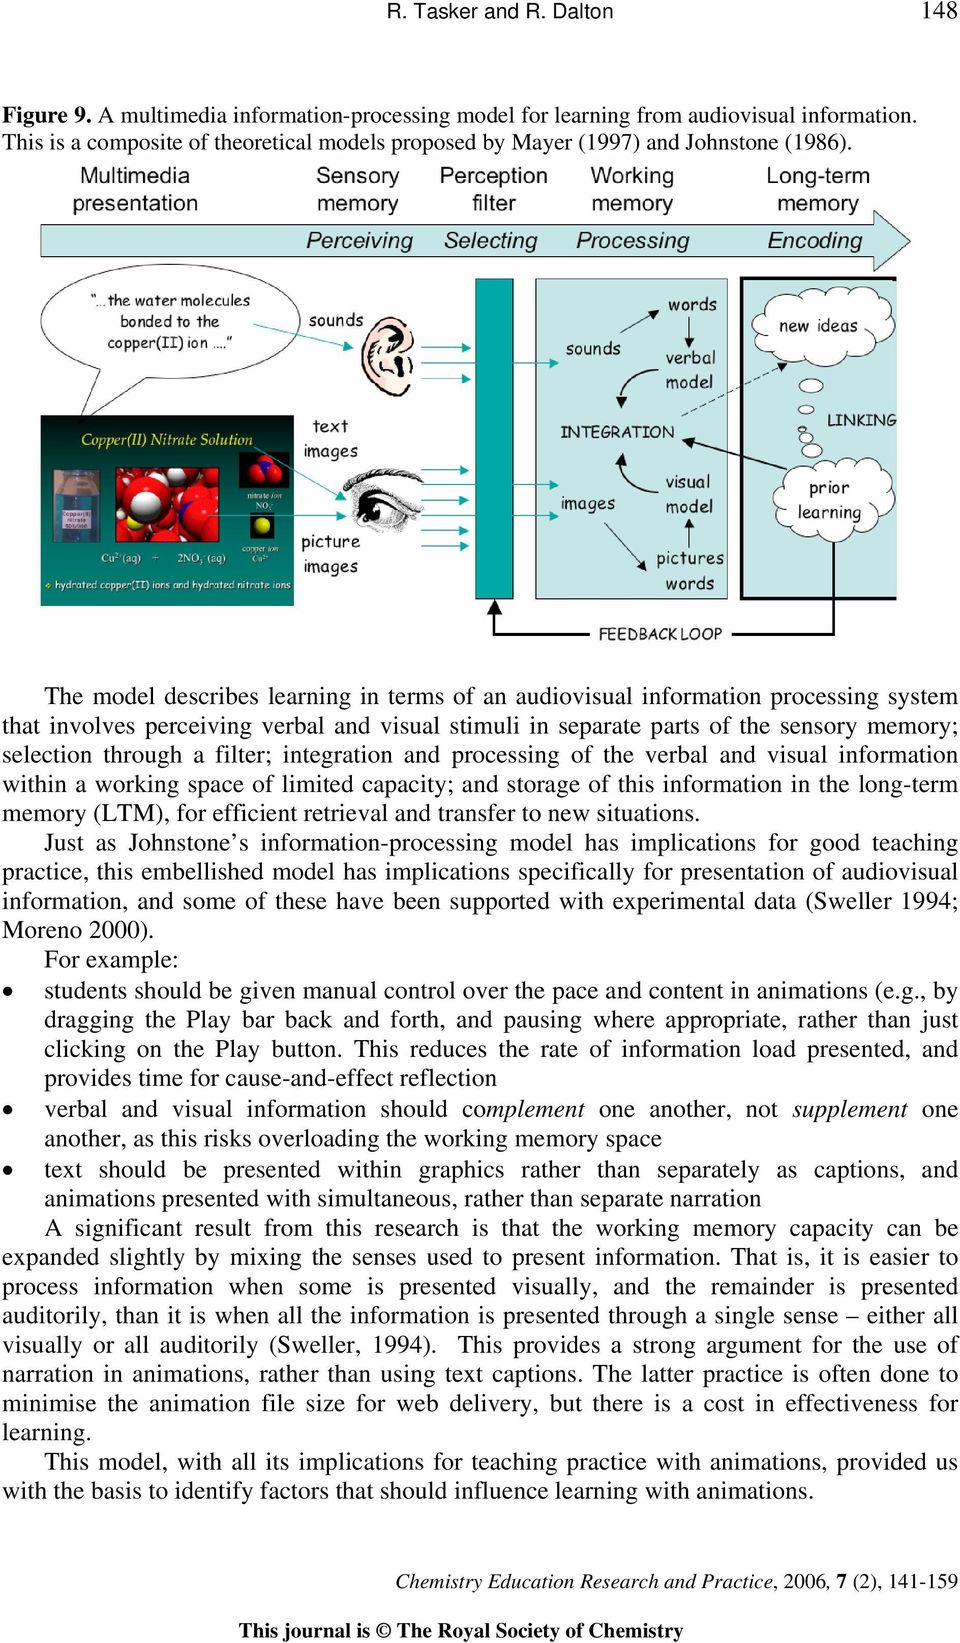 The model describes learning in terms of an audiovisual information processing system that involves perceiving verbal and visual stimuli in separate parts of the sensory memory; selection through a